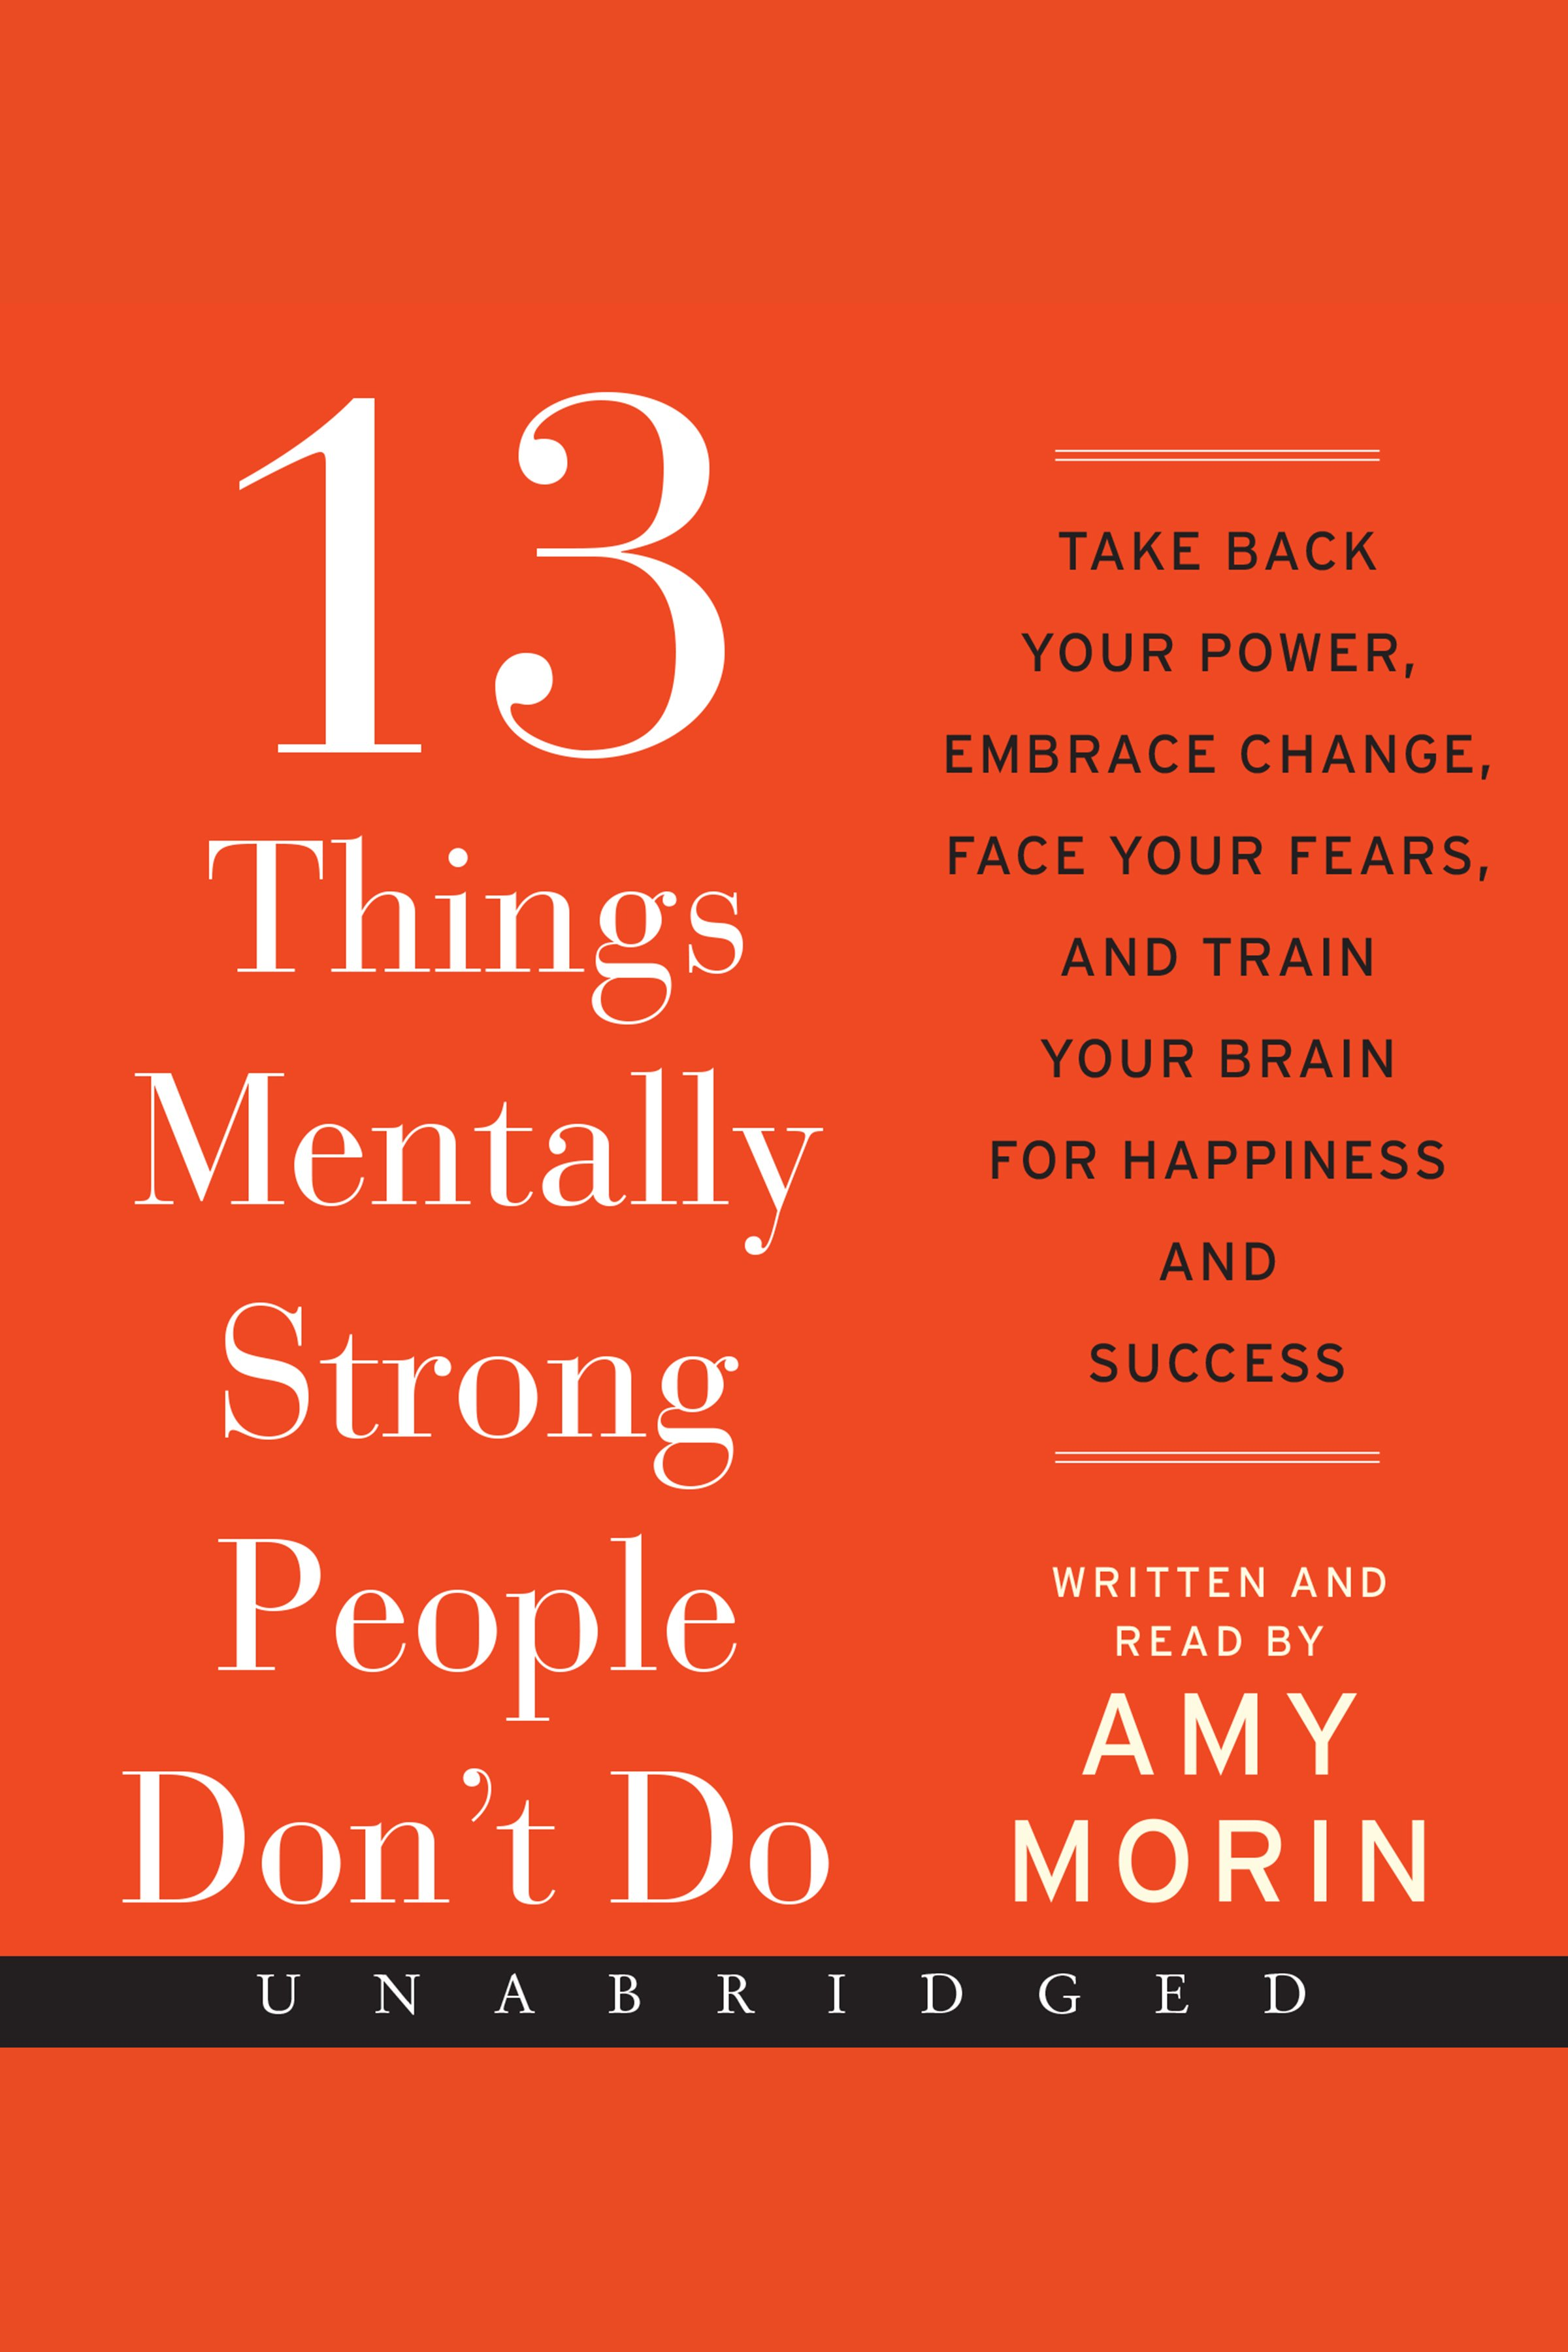 13 Things Mentally Strong People Don't Do Take Back Your Power, Embrace Change, Face Your Fears, and Train Your Brain for Happienss and Success